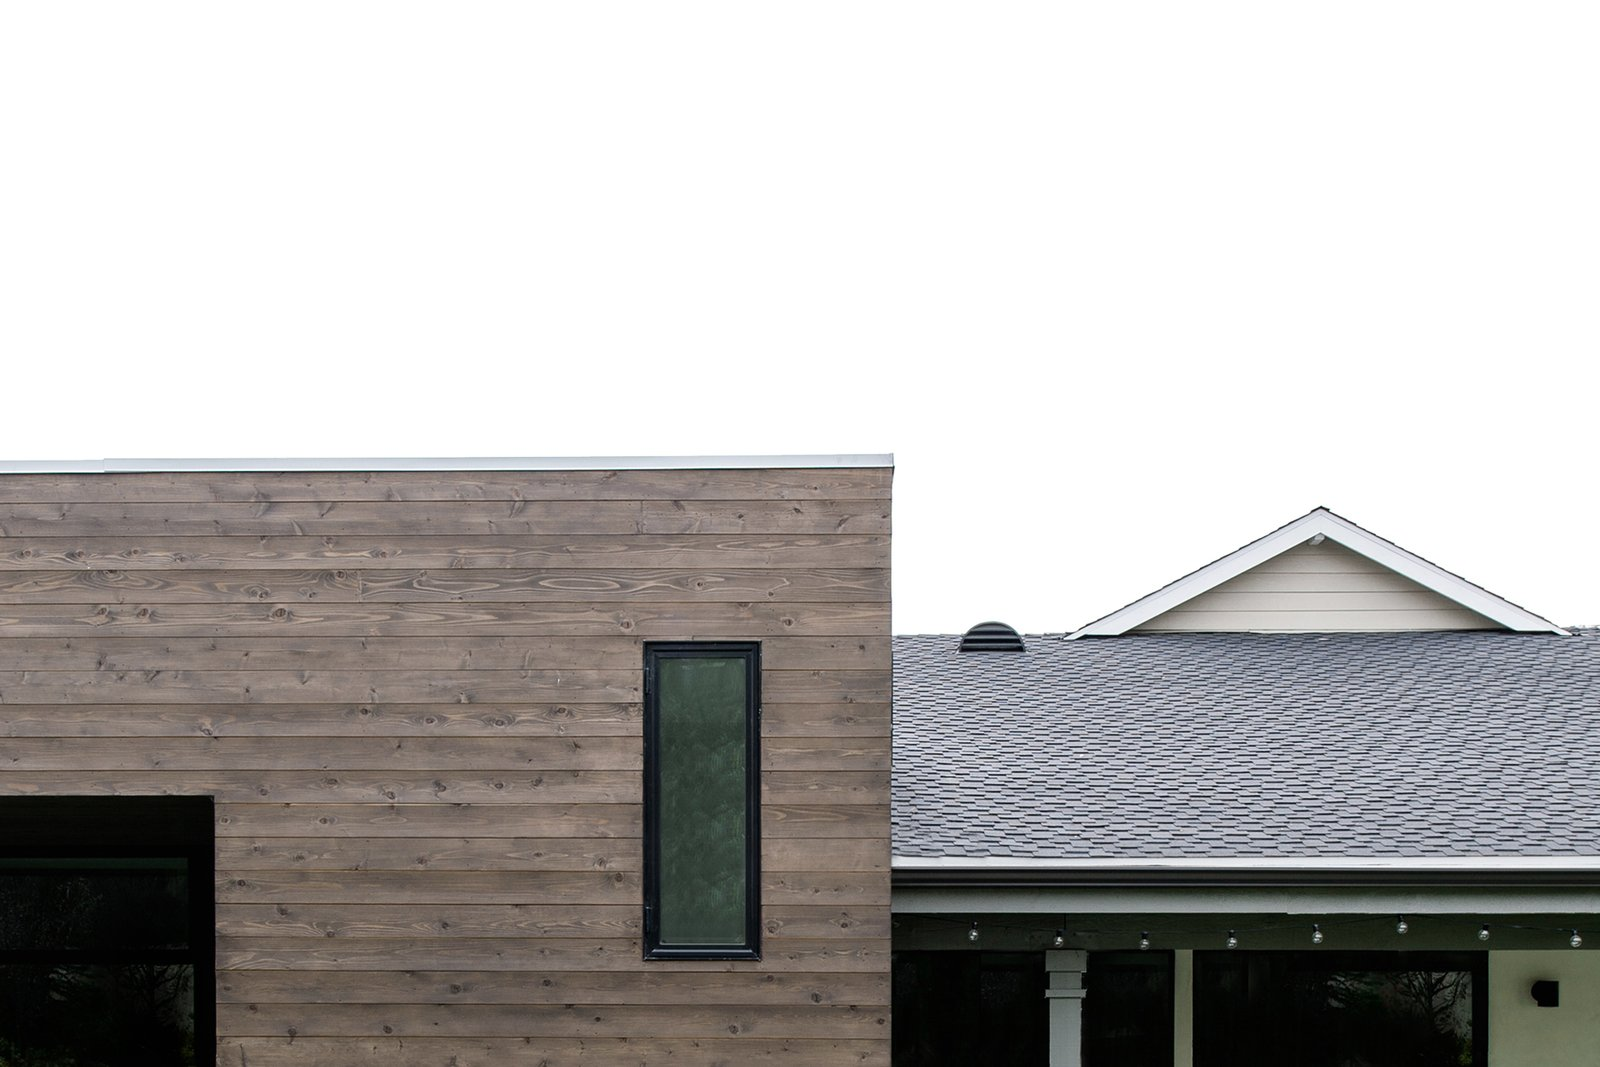 Outdoor, Back Yard, Concrete Patio, Porch, Deck, and Horizontal Fences, Wall cedar cladding + flat roof at rear addition  [villa park modern addition + renovation, california]  Villa Park Modern by MYD studio, inc.